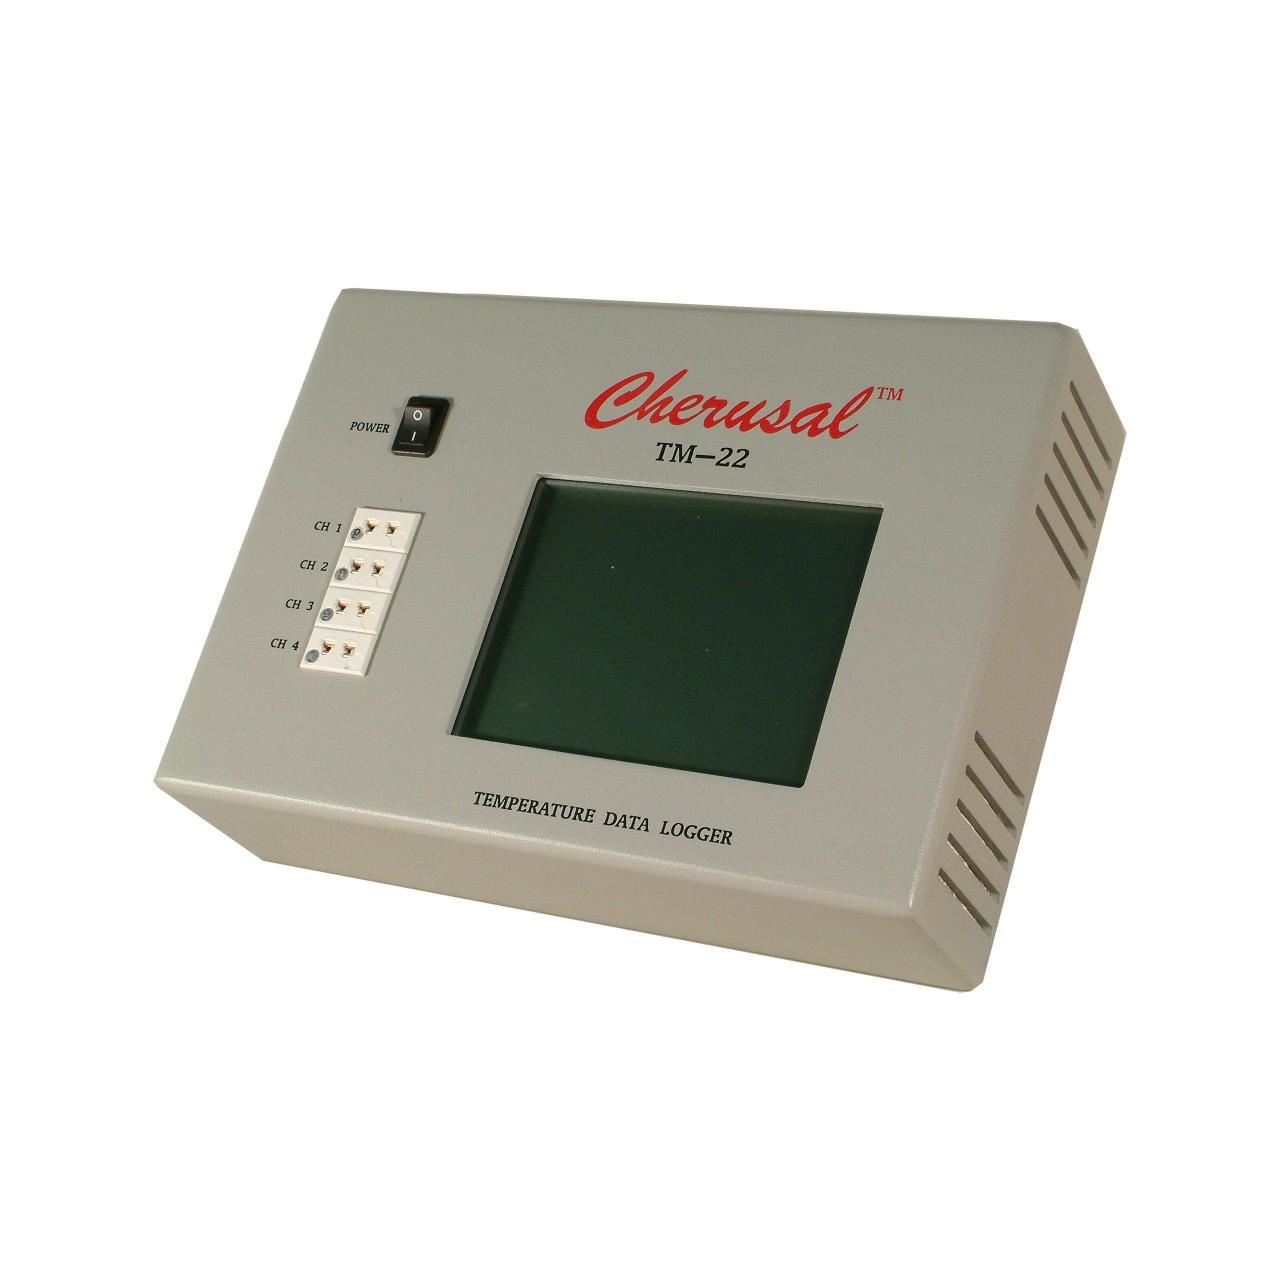 Temperature Data Logger TM-22